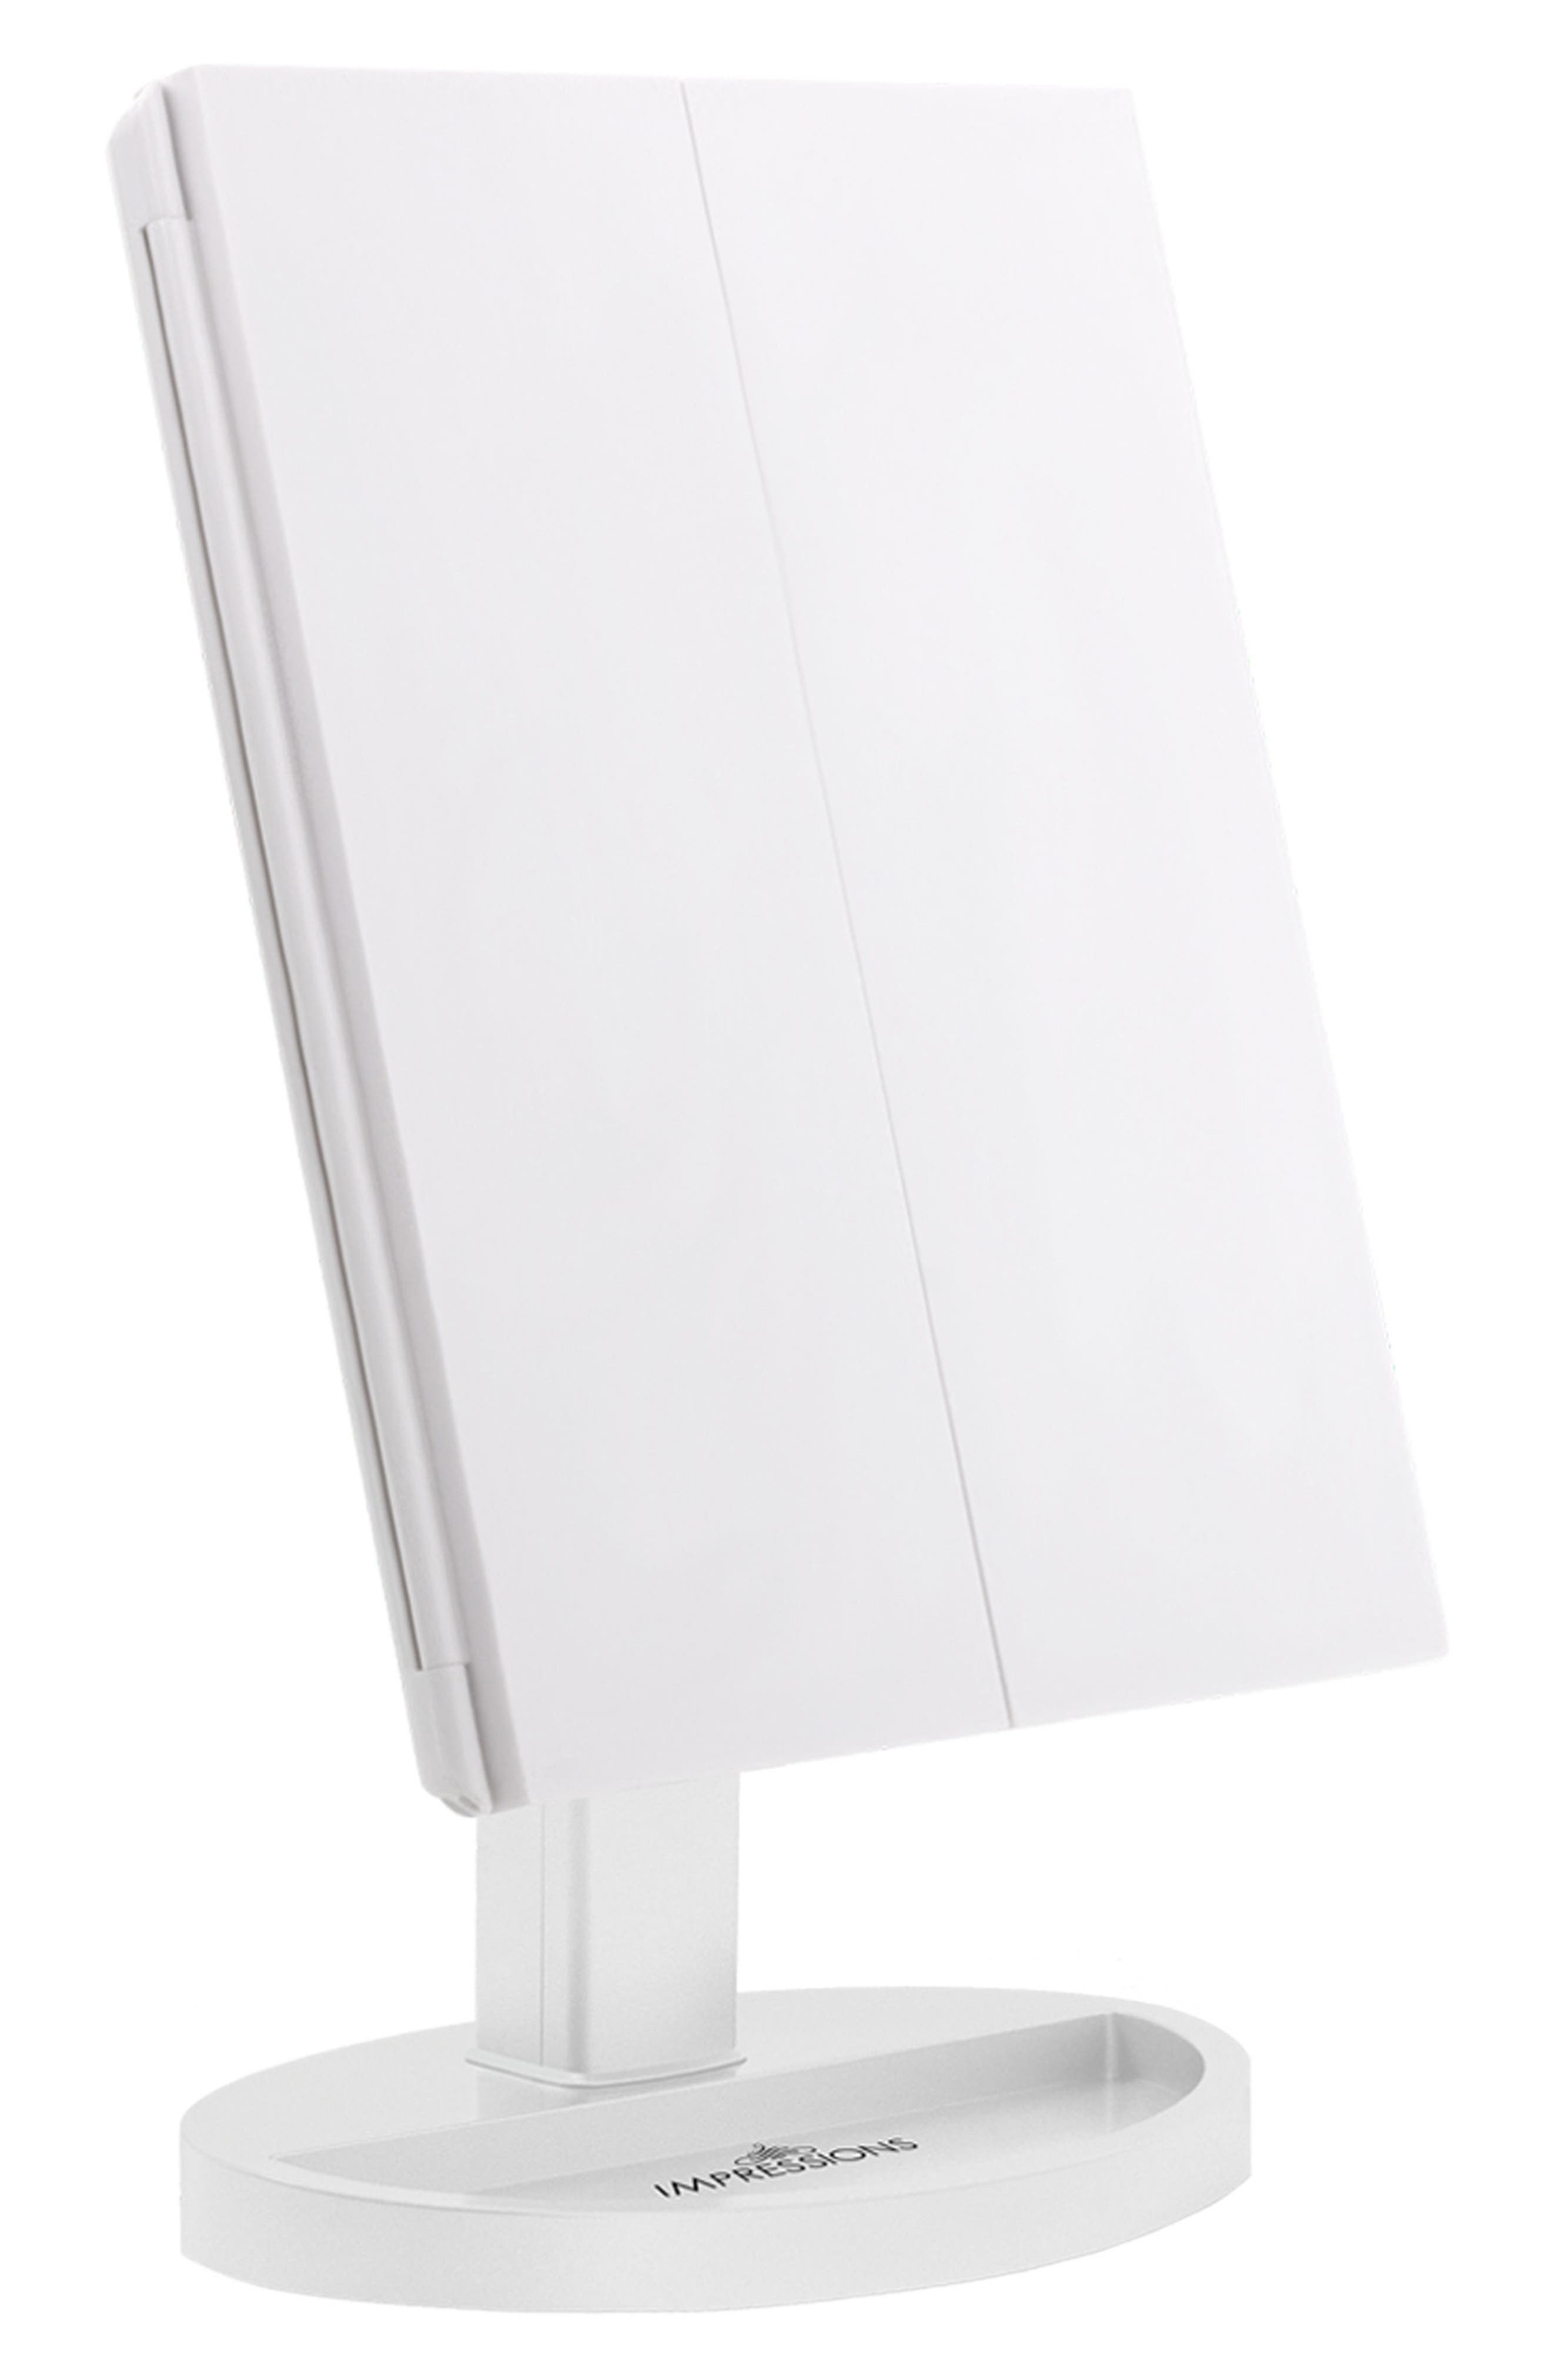 Alternate Image 1 Selected - Impressions Vanity Co. Touch Trifold XL Dimmable LED Makeup Mirror